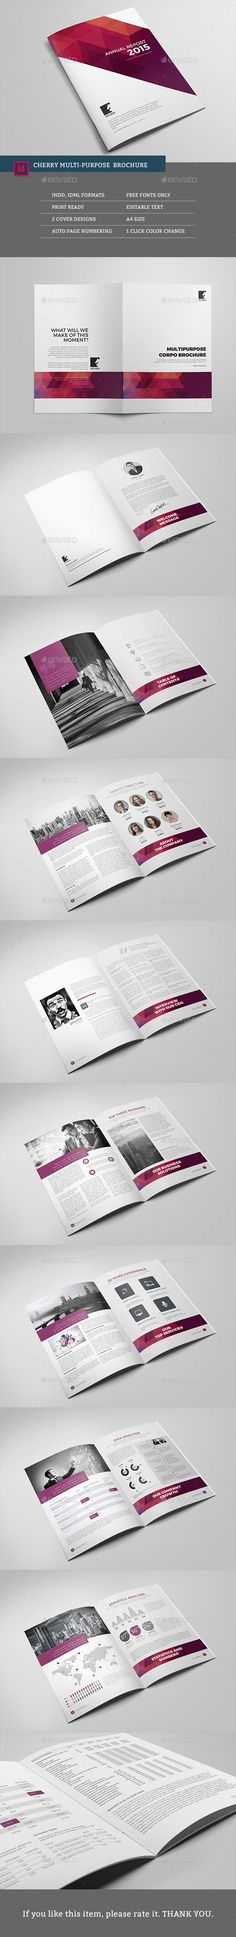 Cherry Multipurpose Brochure Template InDesign INDD #design Download: http://graphicriver.net/item/cherry-multipurpose-brochure-template/13865069?ref=ksioks